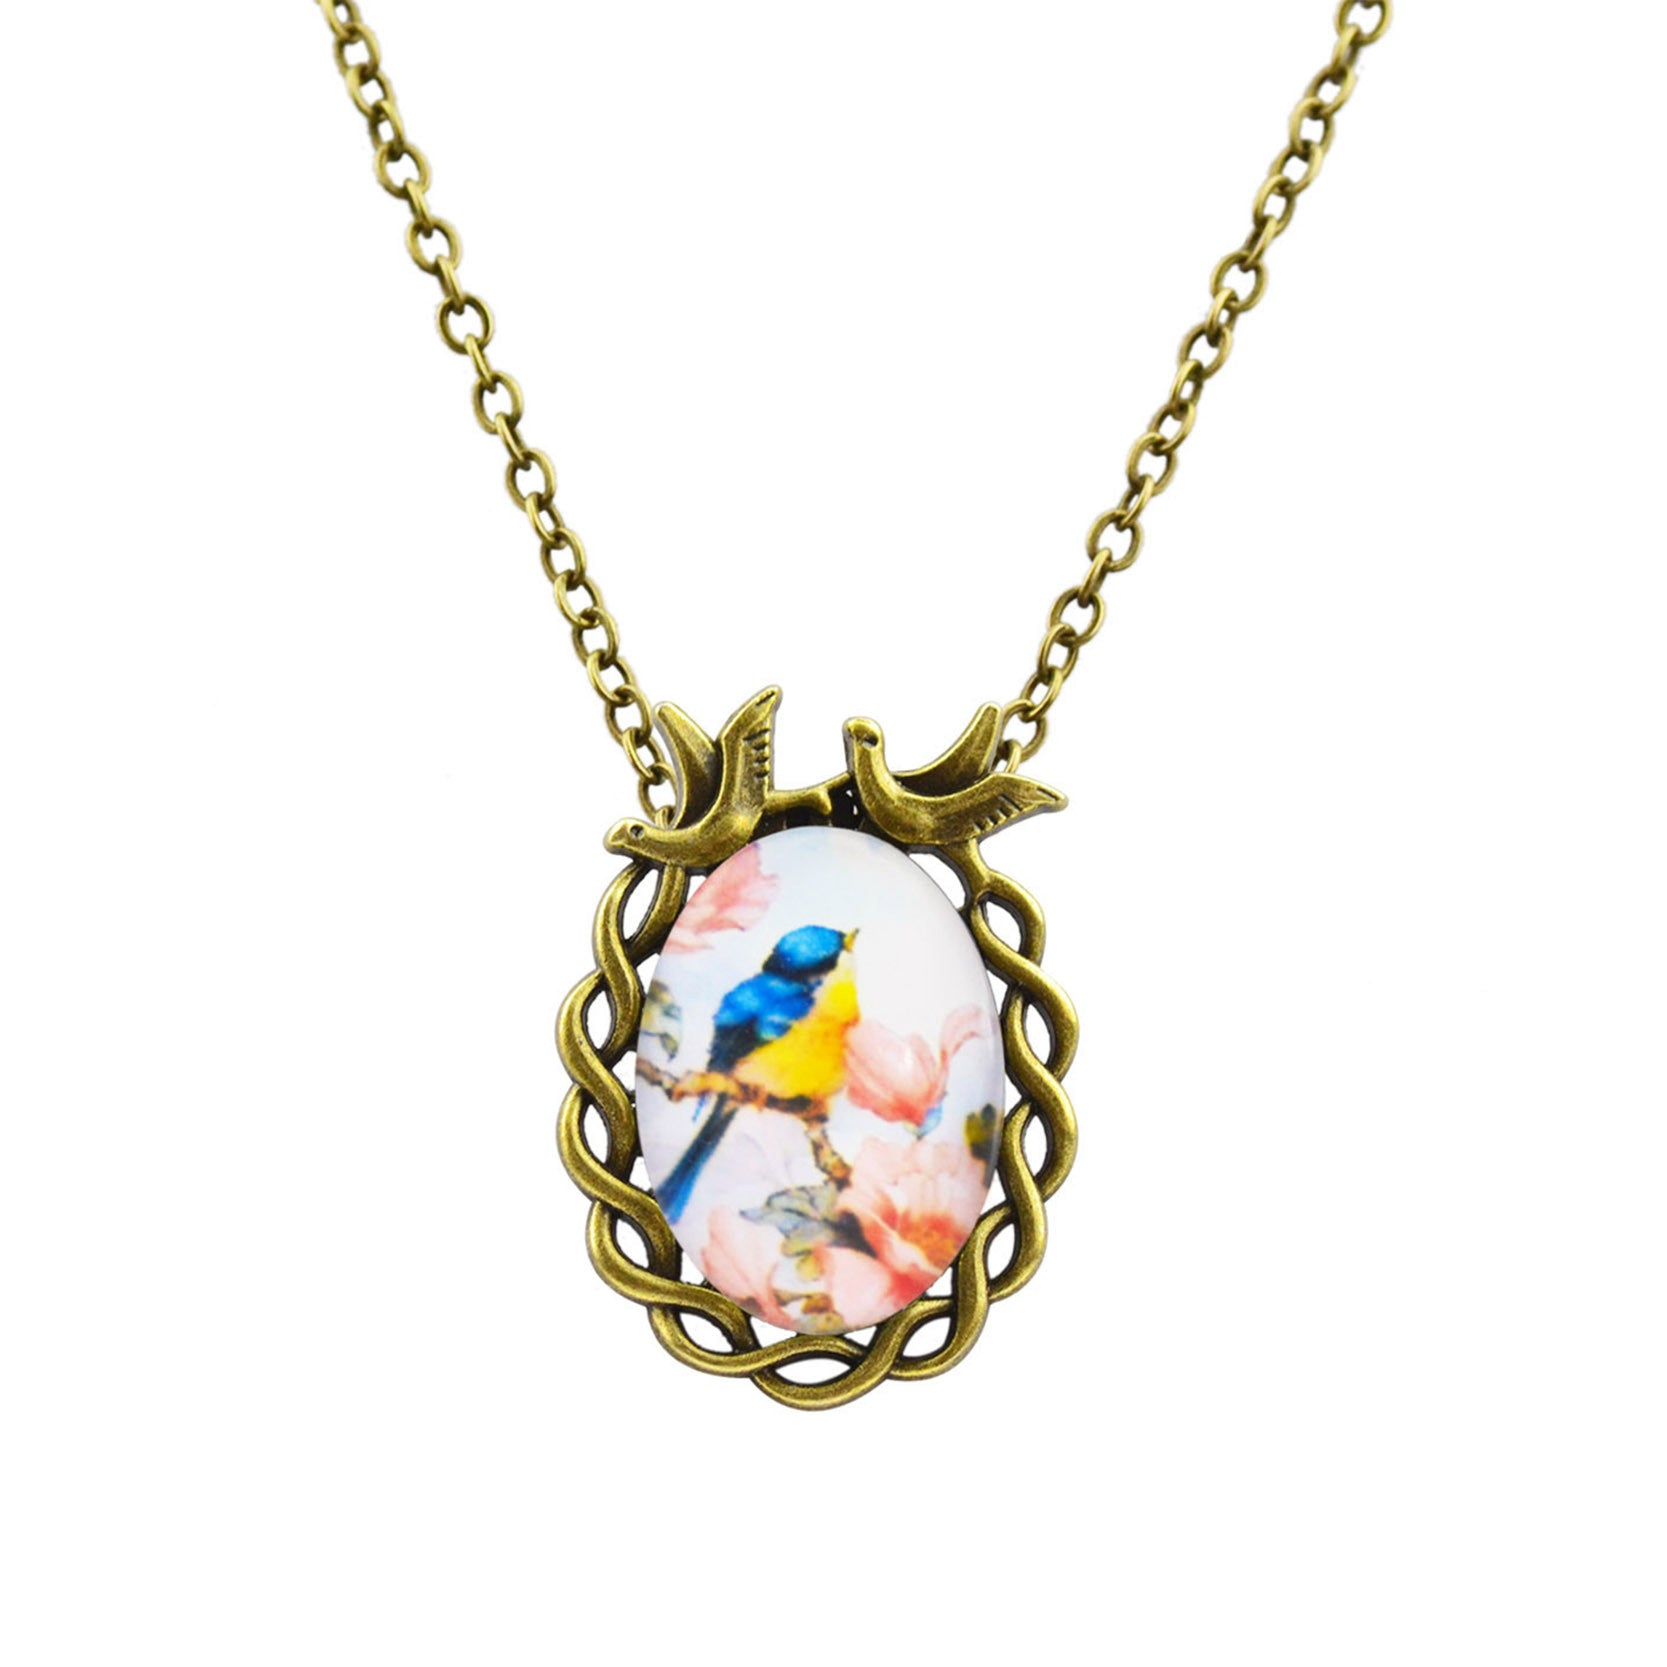 Vintage Jewelry Antique Bronze Oval Flower Bird Art Picture Glass Statement Chain Necklace Fine Jewelry Pendant Necklace Women